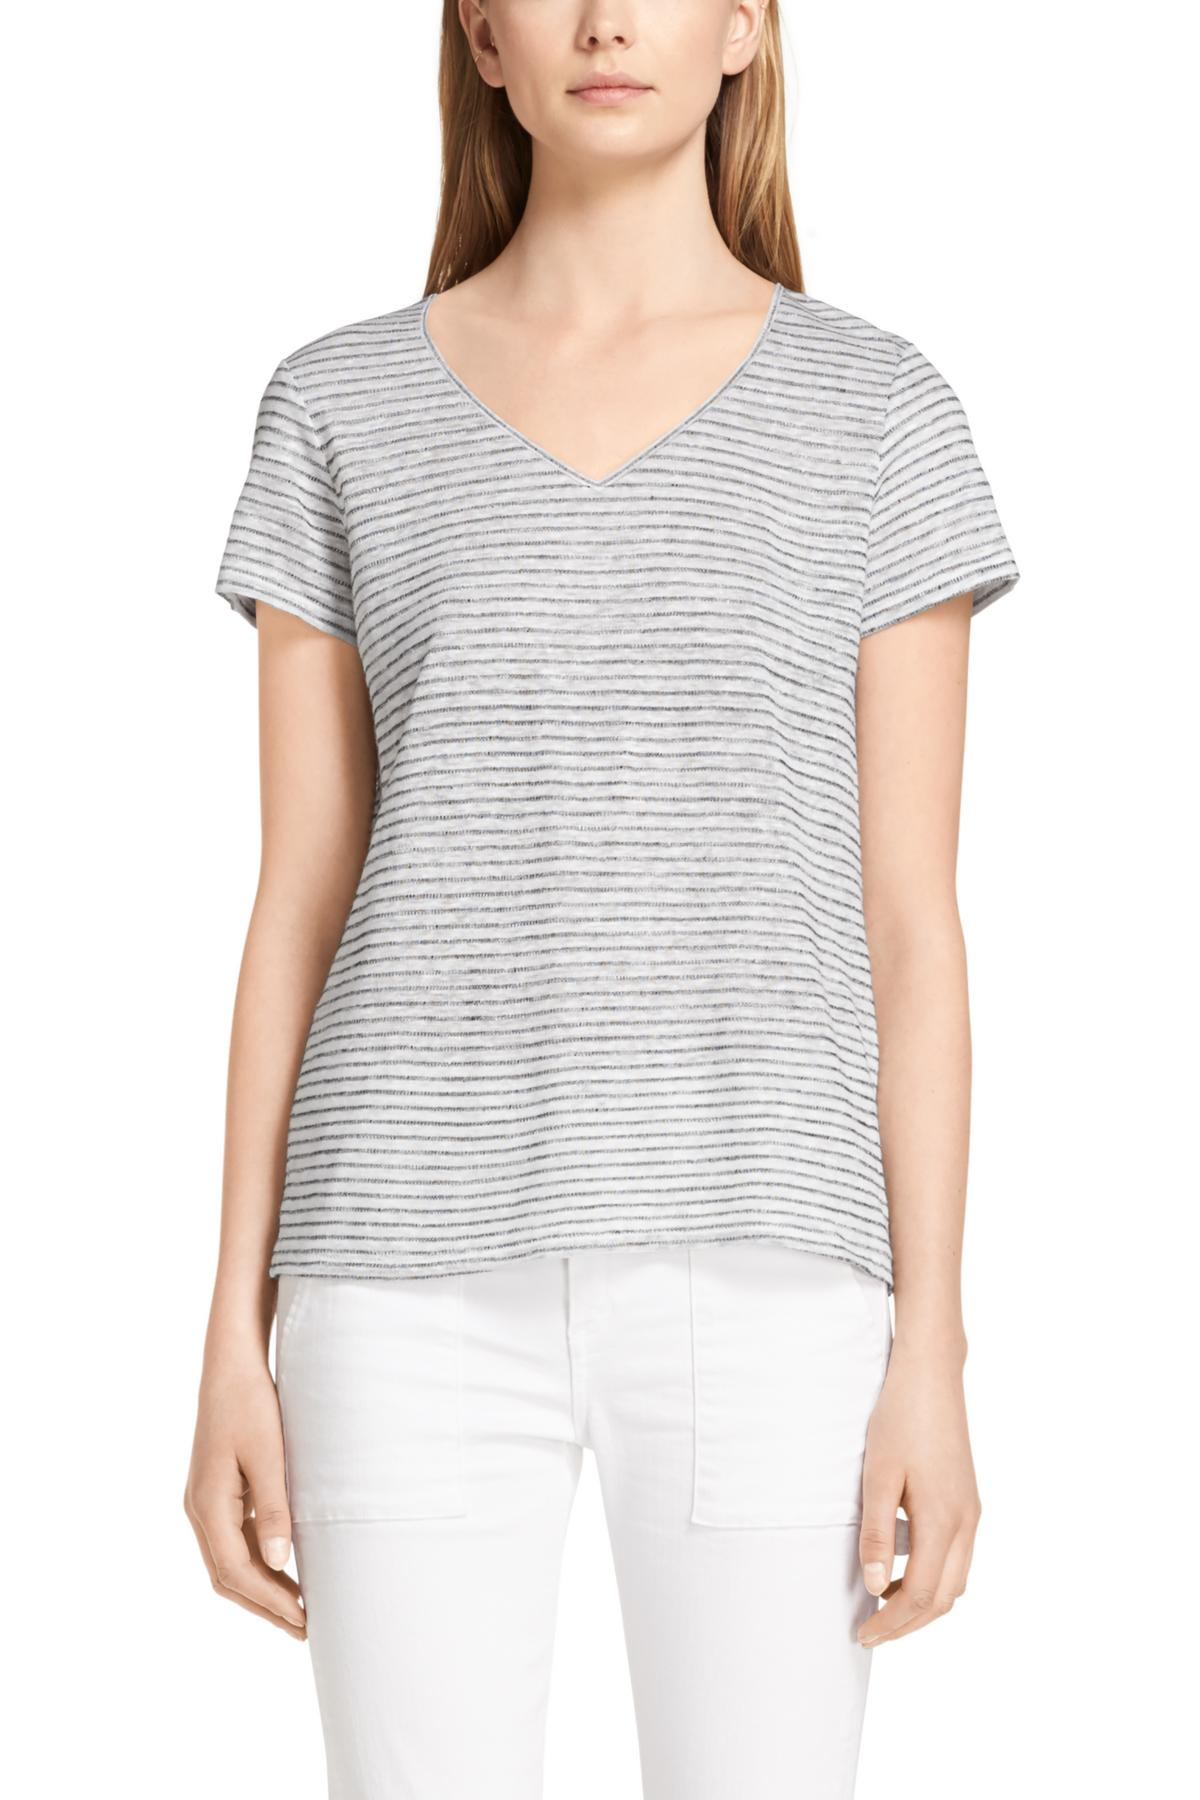 RAG & BONE SUMMER STRIPE BASE V-NECK